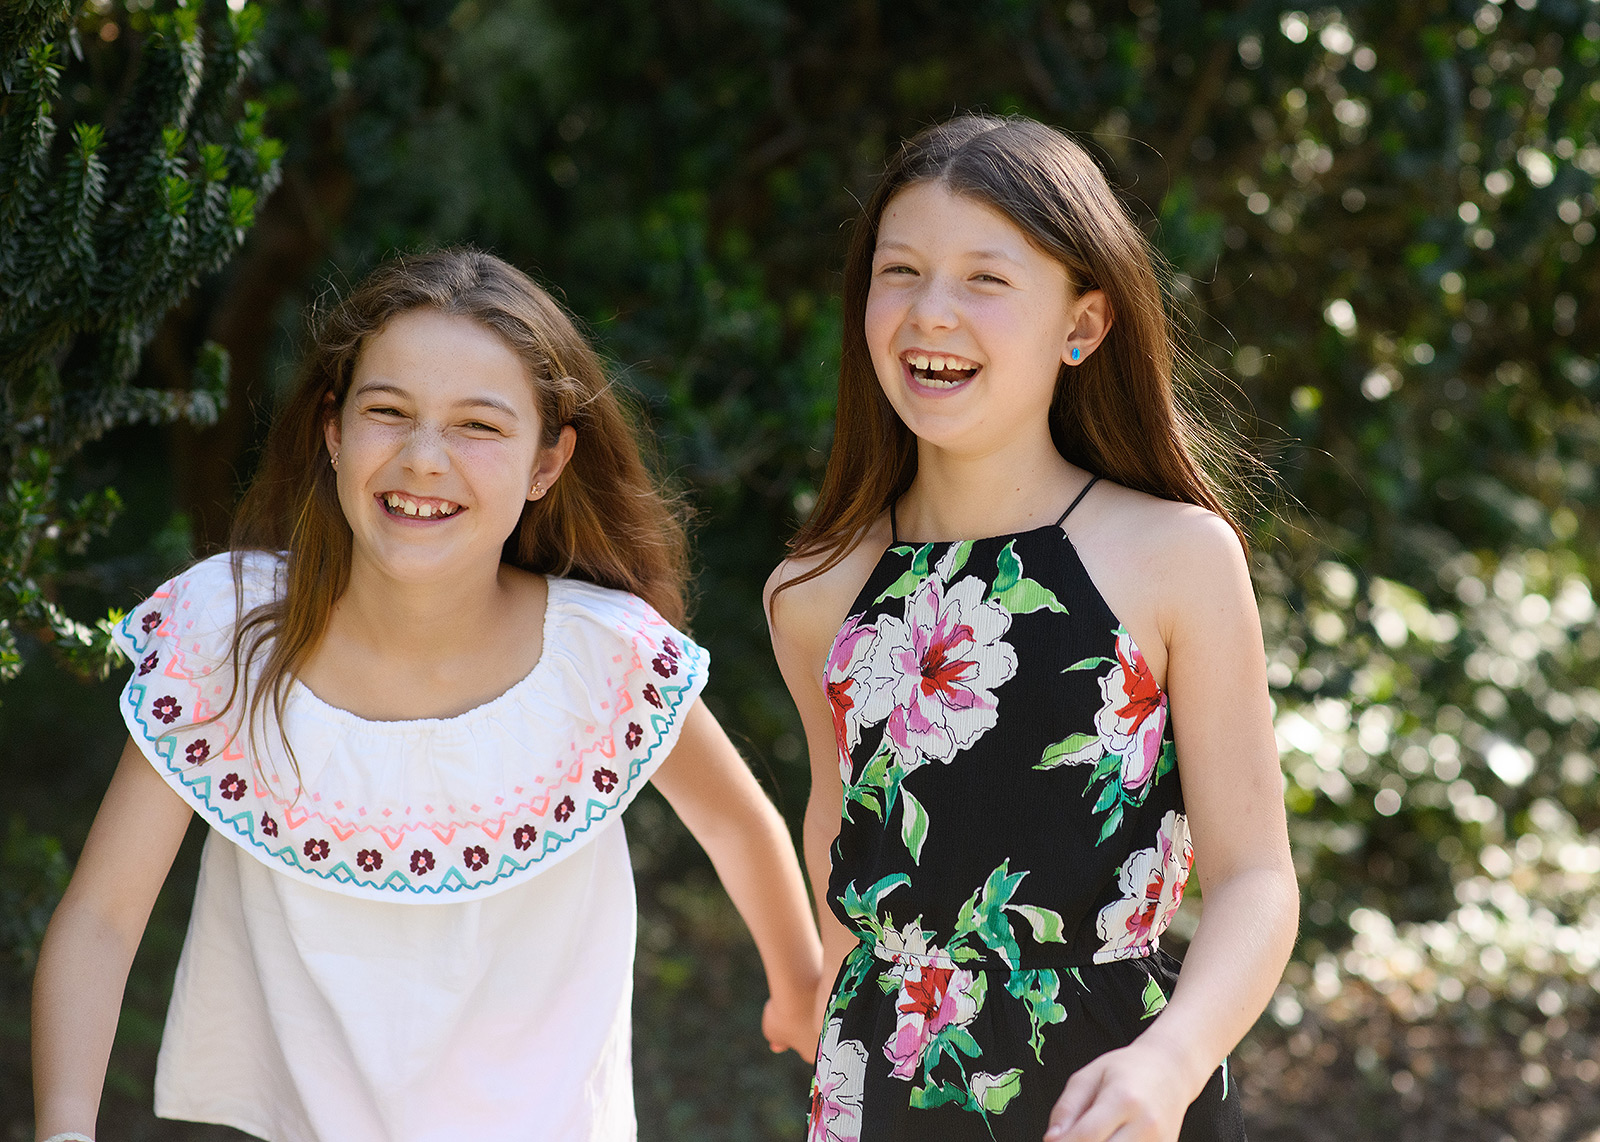 Sisters wearing floral print outdoors with trees in background